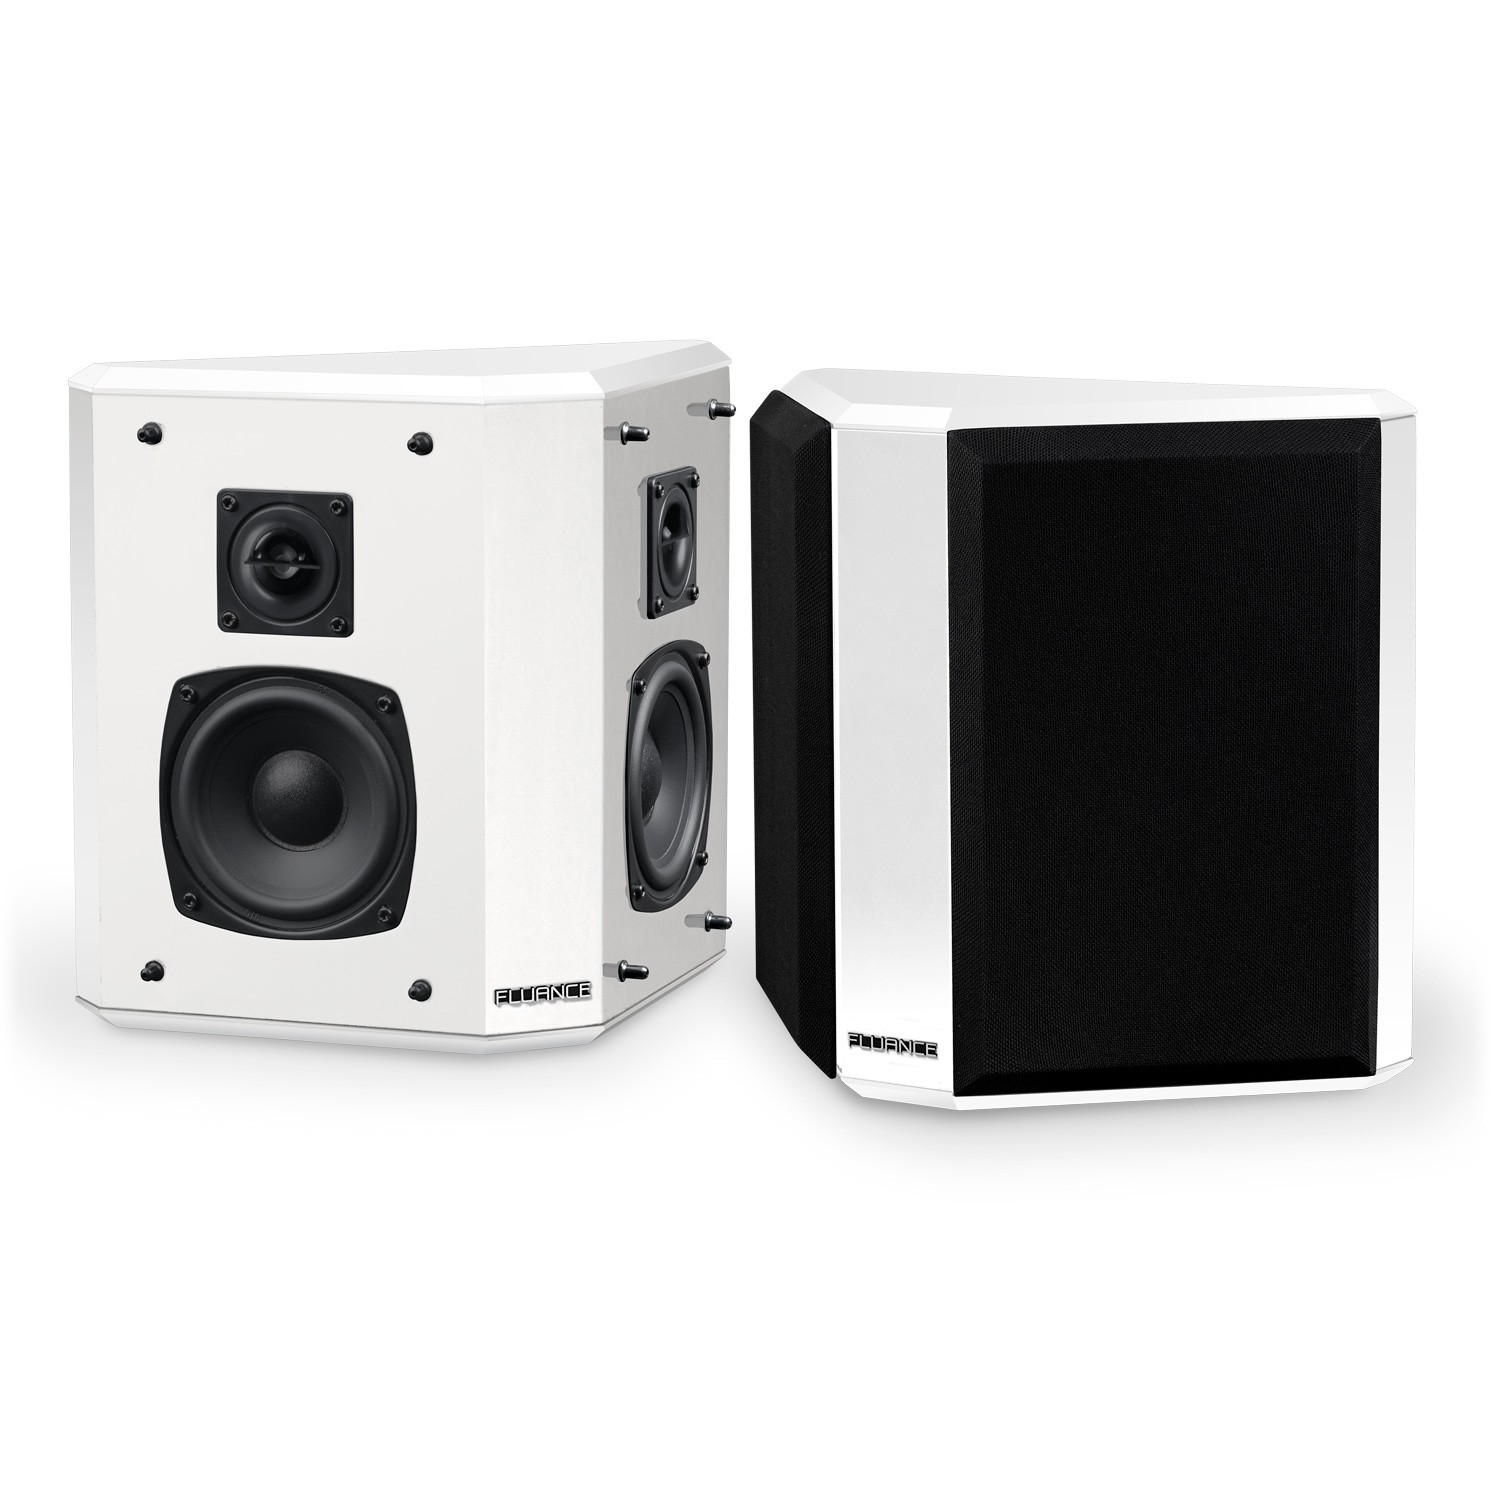 Elite Series Bipolar Surround Sound Satellite Speakers